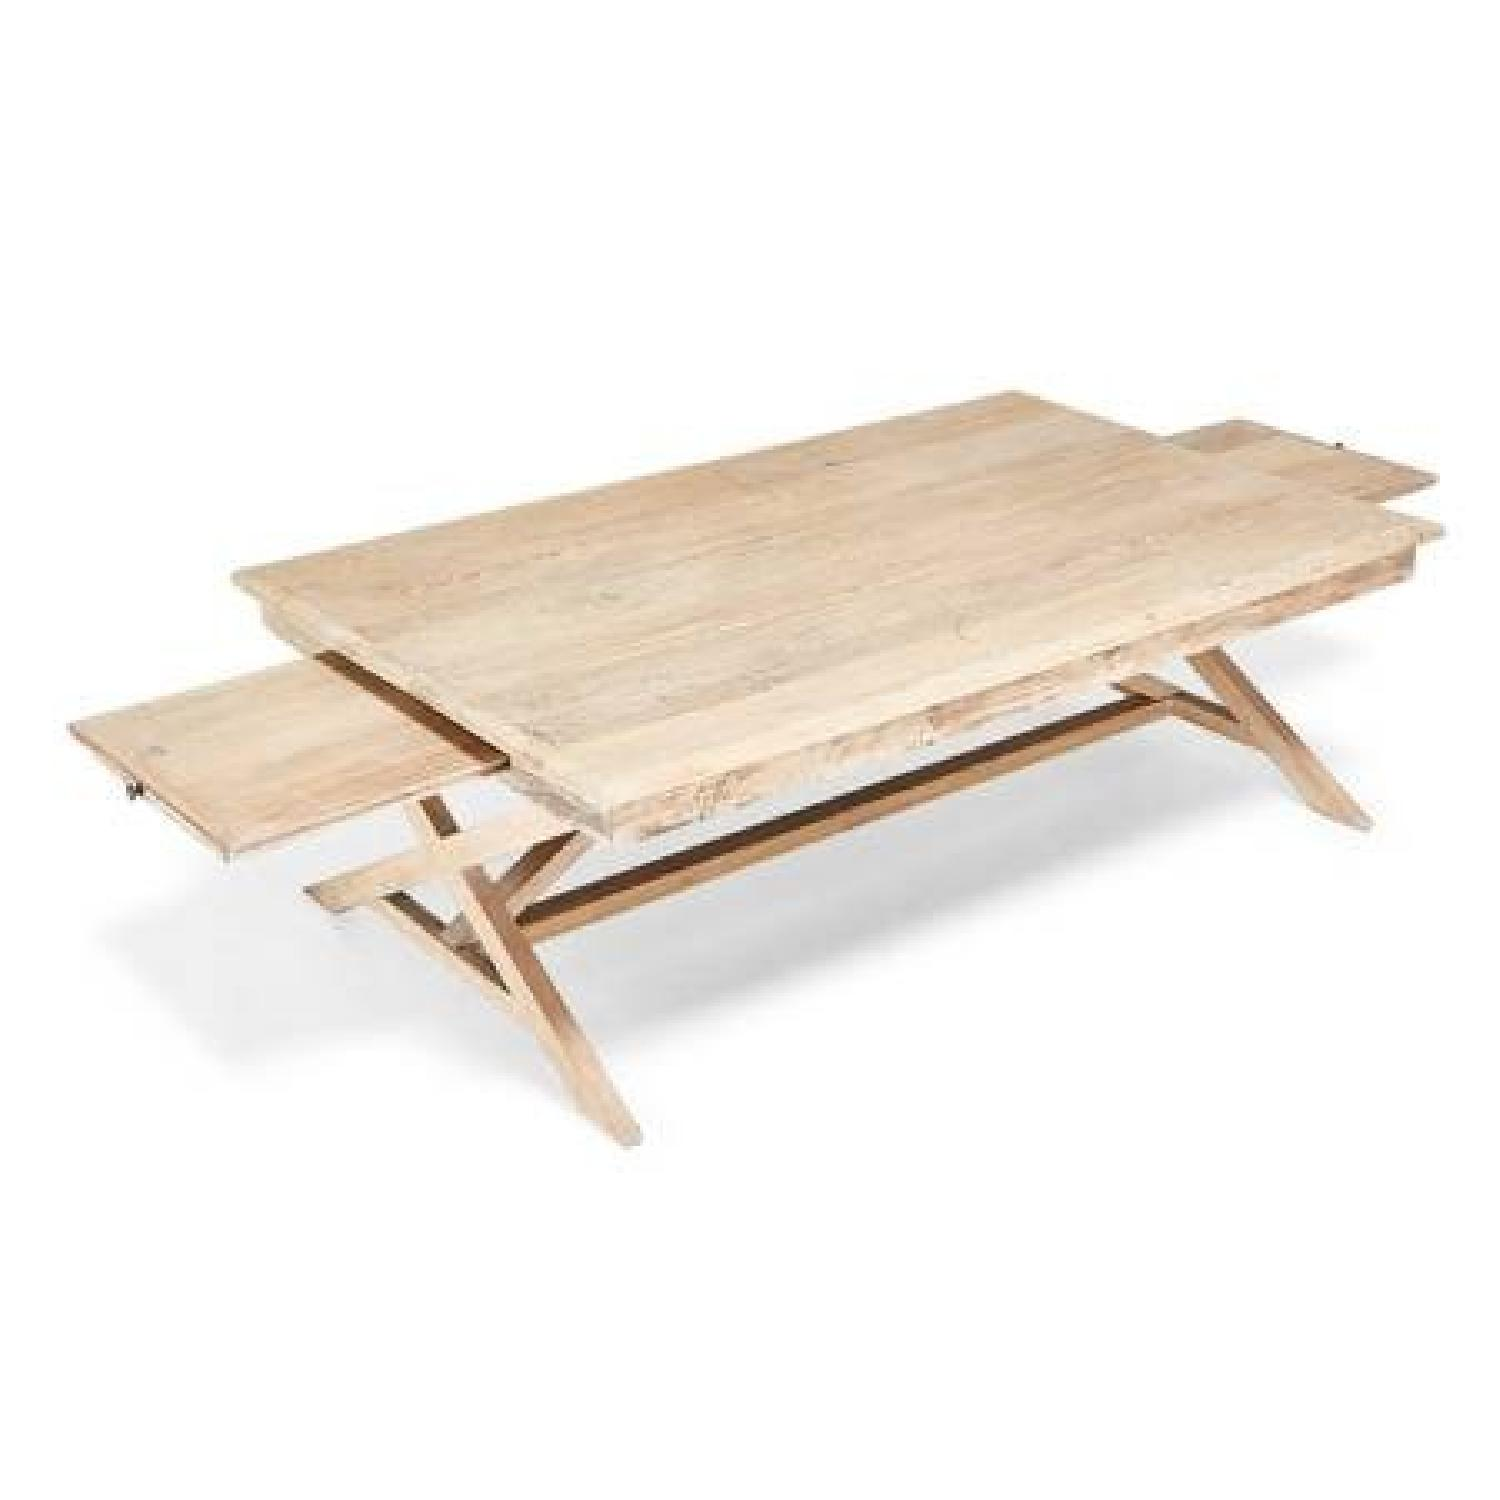 ABC Carpet & Home Handcrafted Coffee Table - image-7